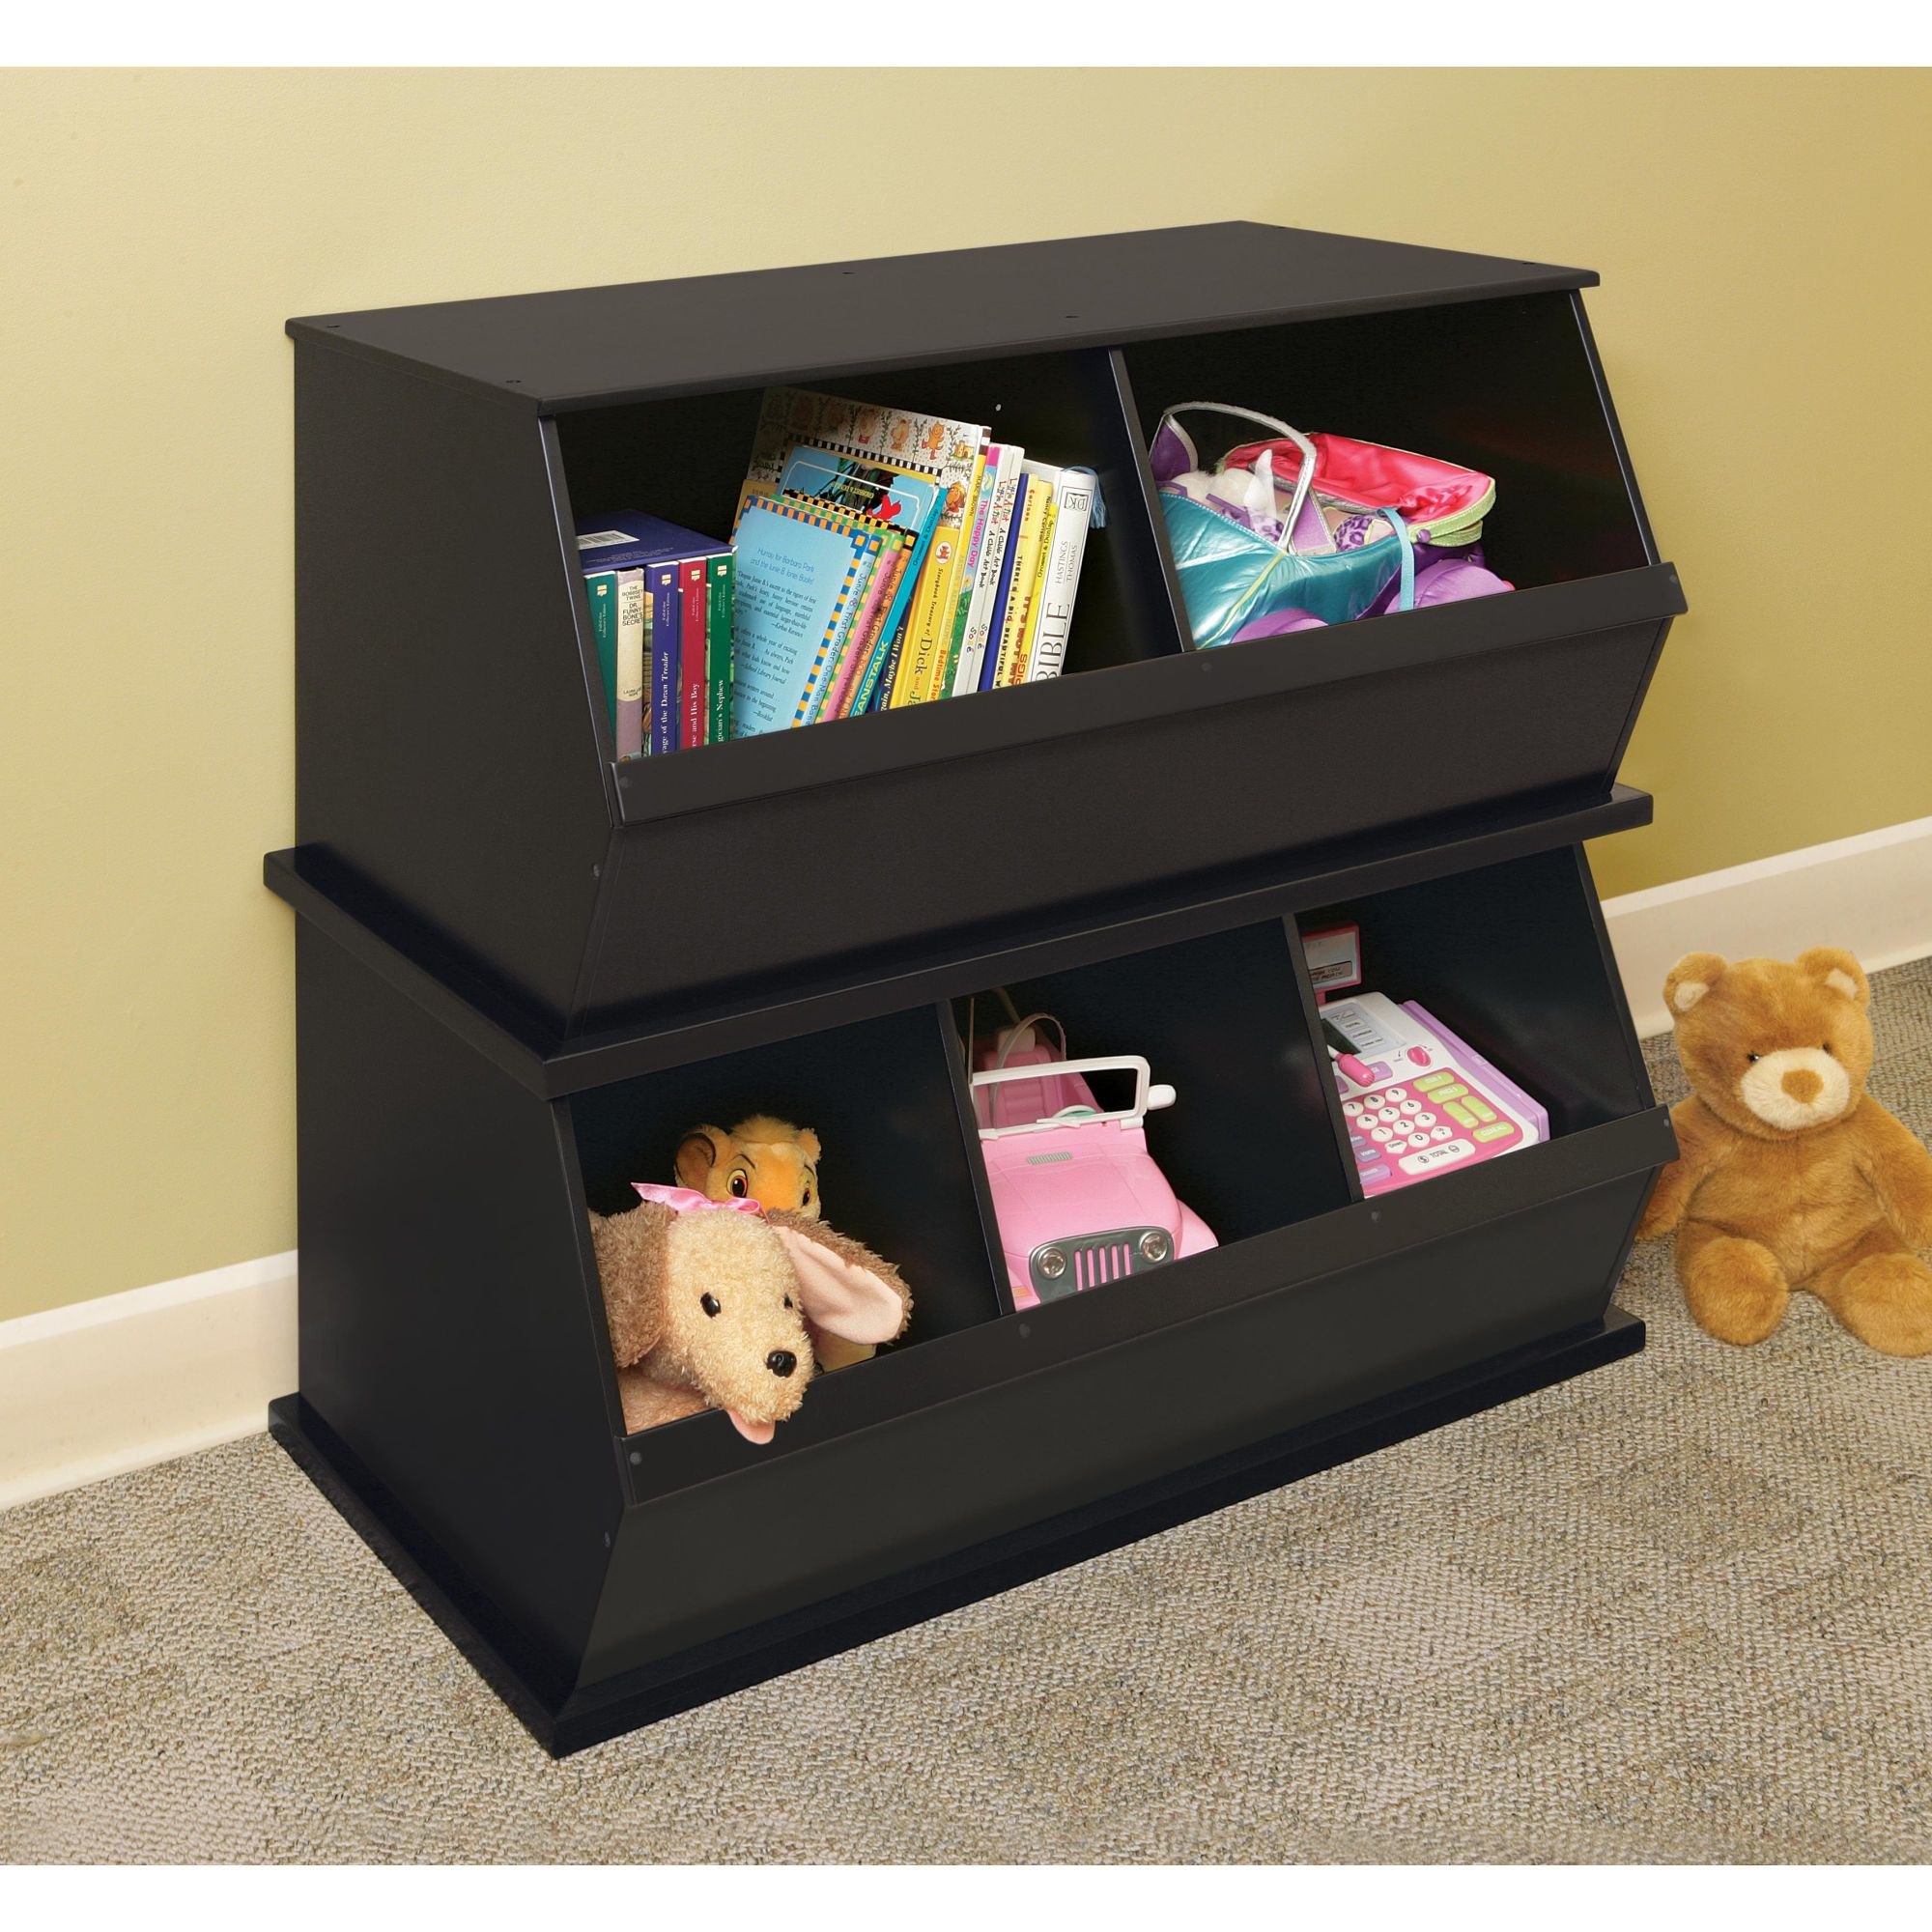 Toy Storage Cubby Storage Childrens Storage Furniture Stackable Storage